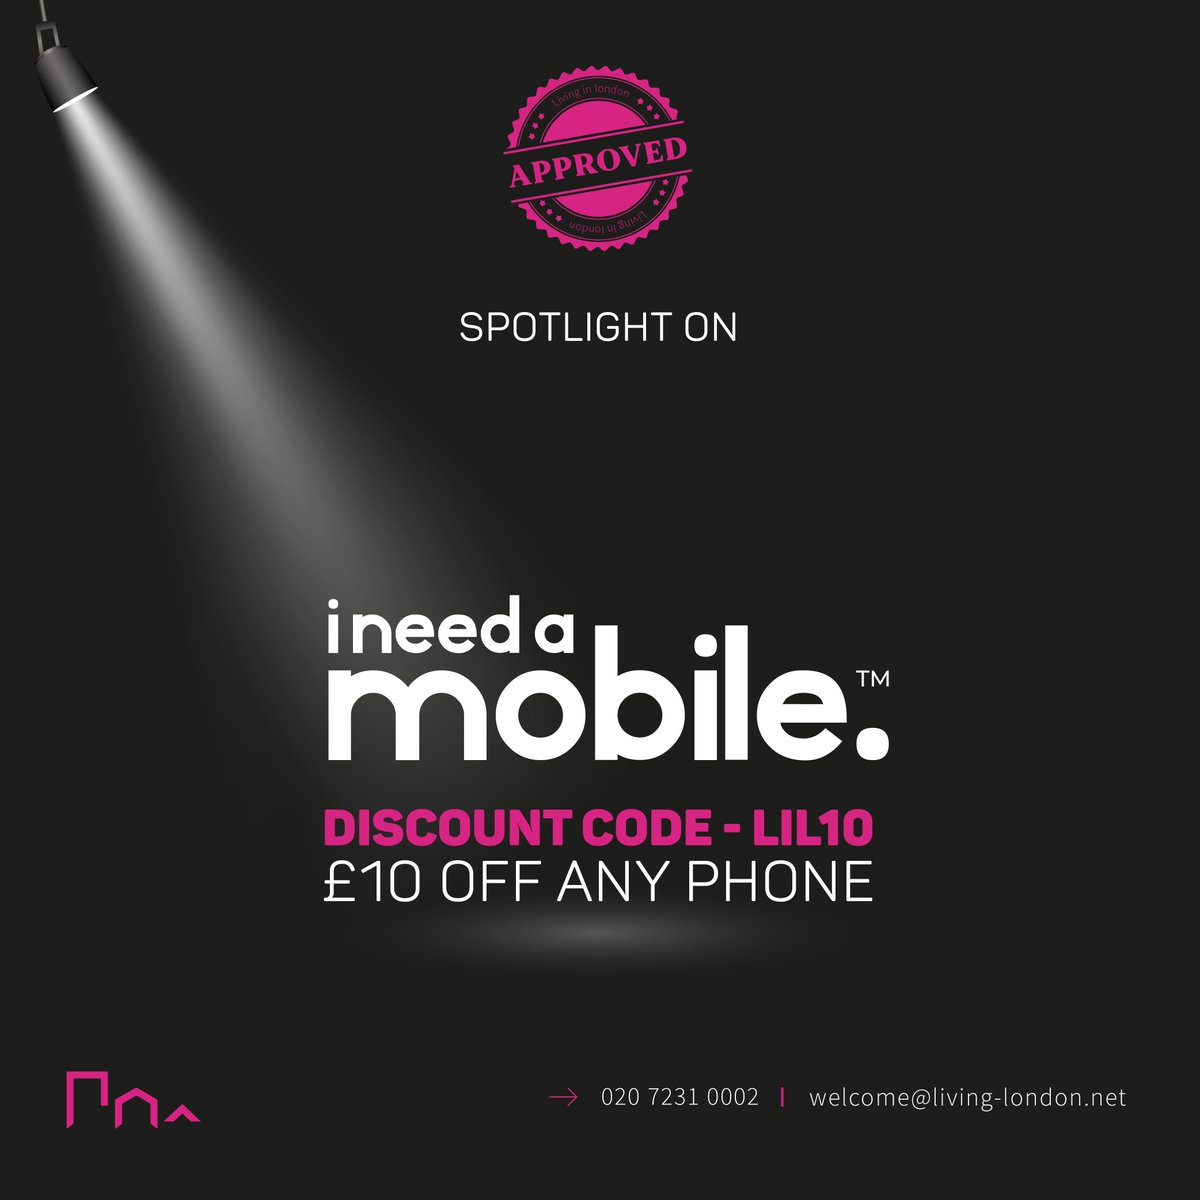 Spotlight on... @INeedAMobile - Need a new phone? Maybe you're a #localbusiness owner considering investing in #workmobiles for your employees due to #Covid-19? Get £10 off any phone with our exclusive #discount code - LIL10  Choose your #newphone today! https://www.ineedamobile.compic.twitter.com/nGXHtl8fFR